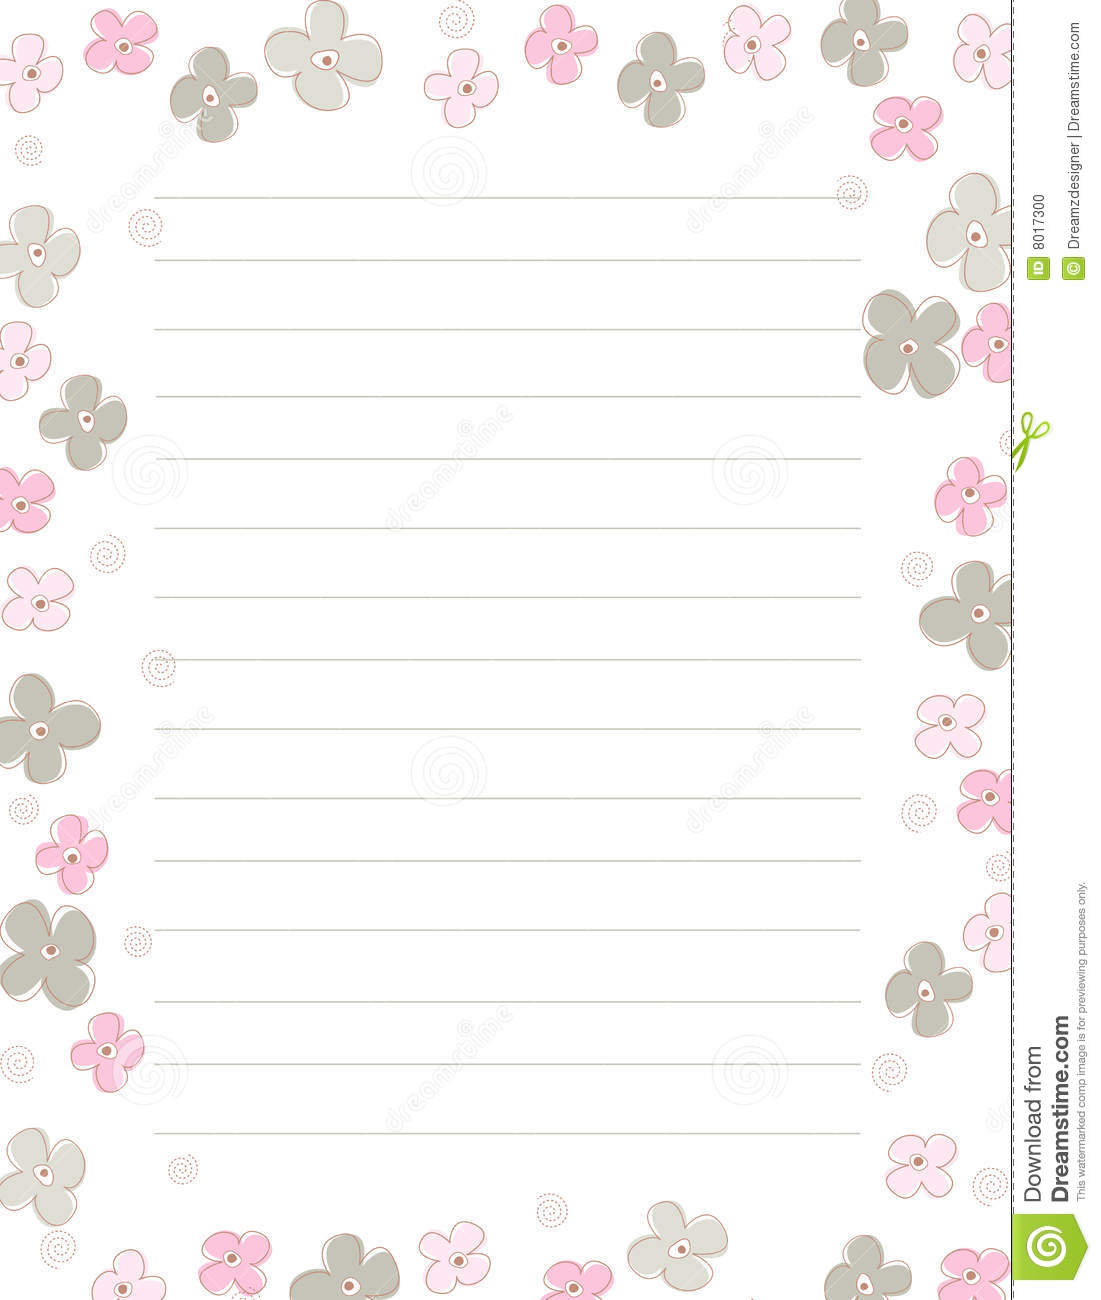 Fall Wallpaper With Owls Spring Flowers Note Paper Stock Illustration Illustration